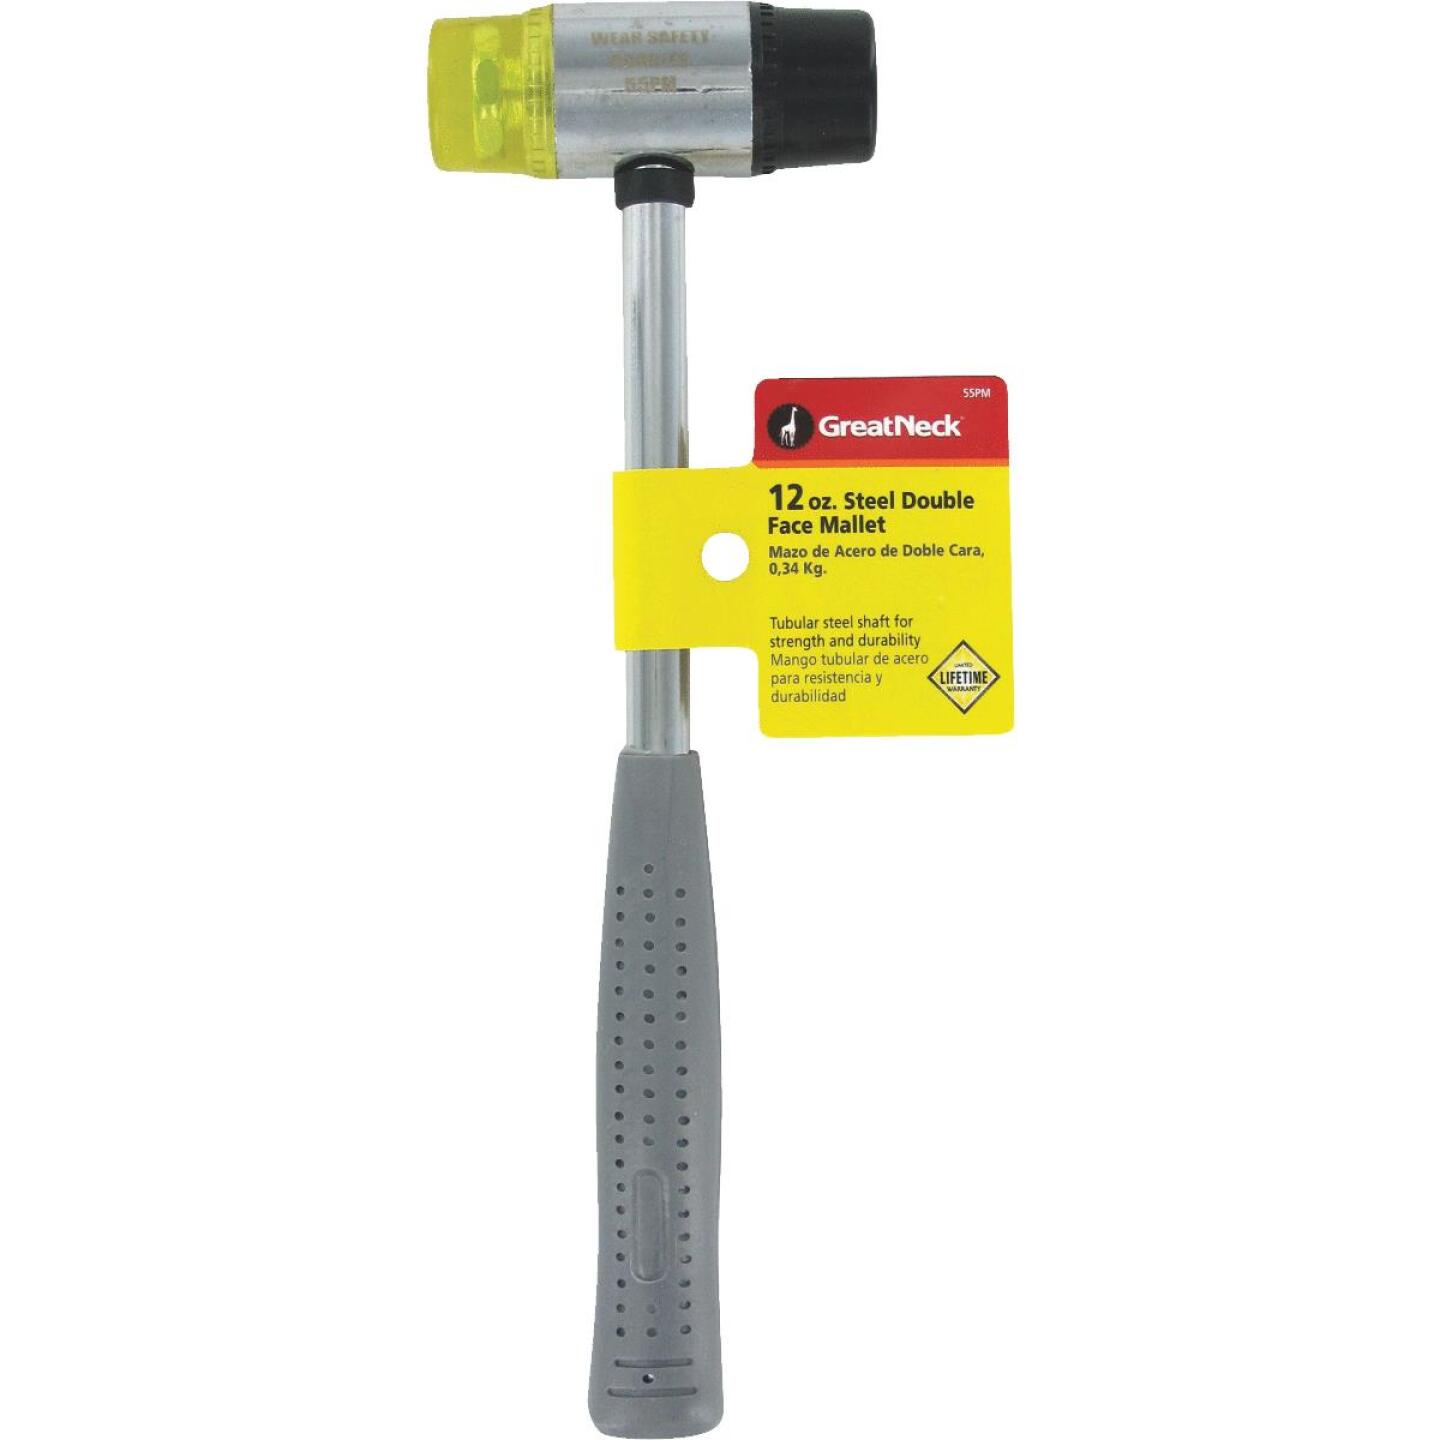 Great Neck 12 Oz. Plastic/Rubber Mallet with Tubular Steel Handle Image 2